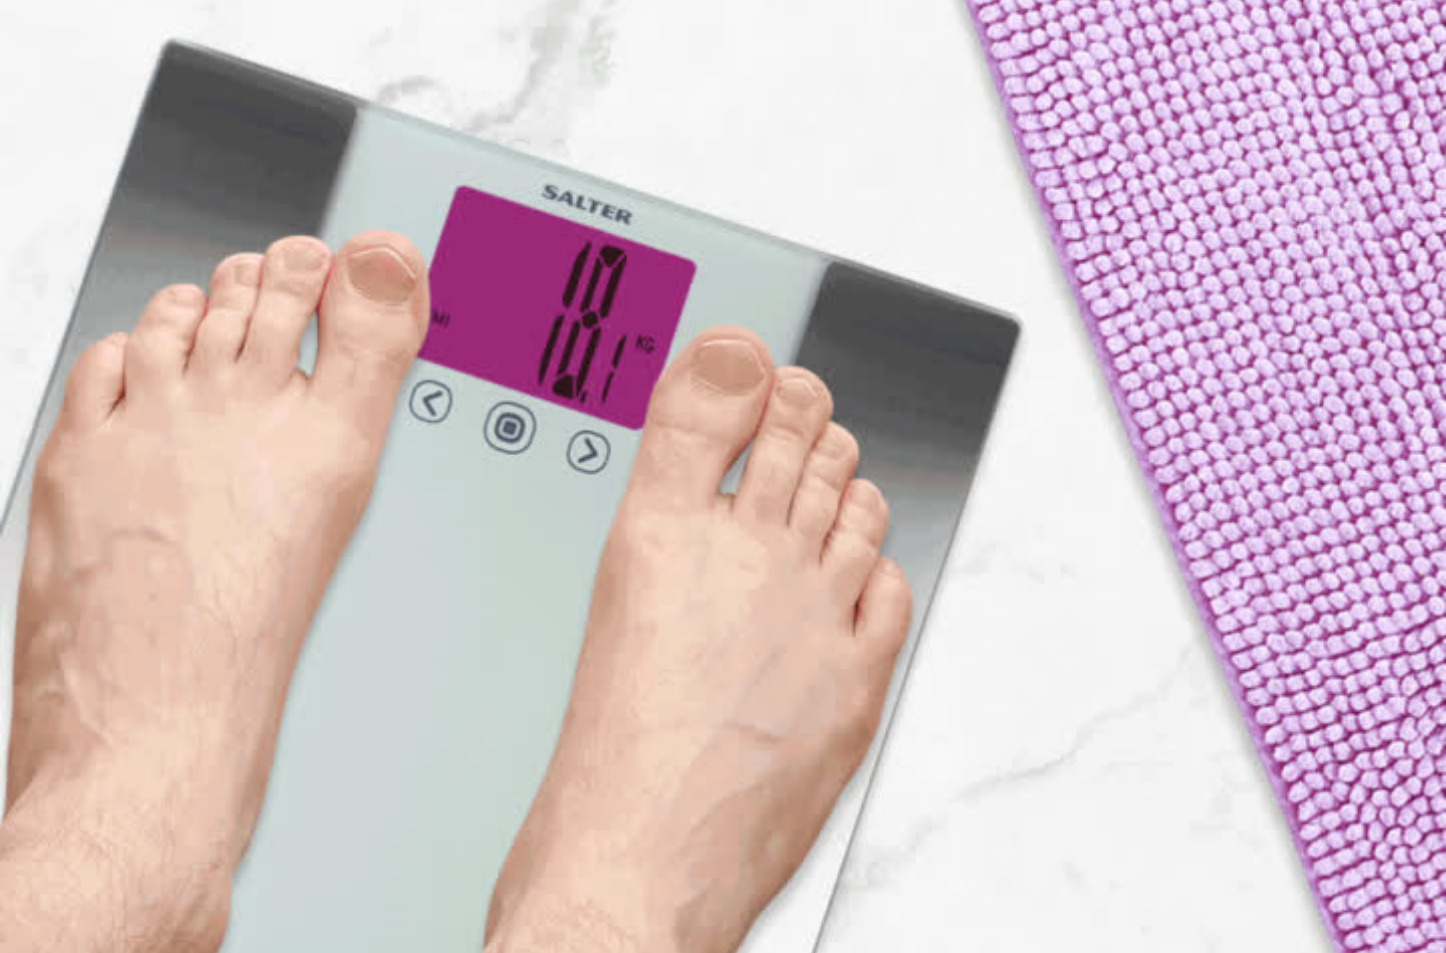 Salter Body Analyser Bathroom Scales